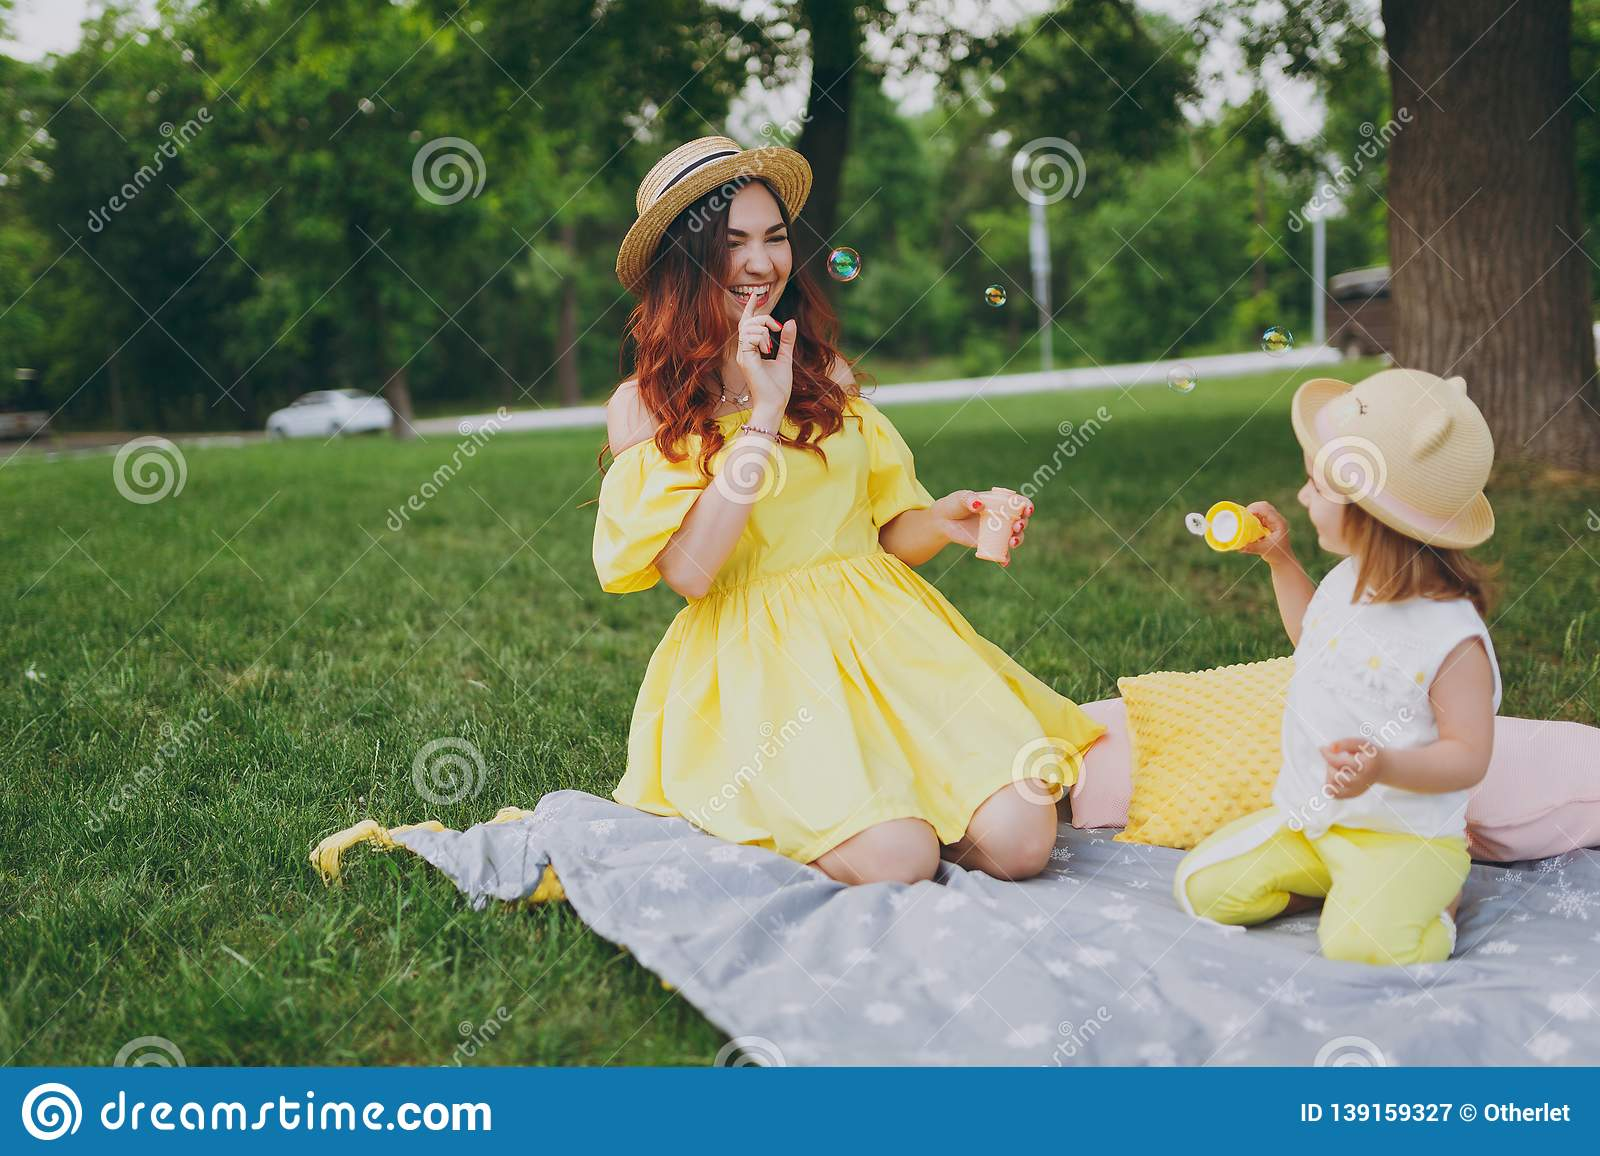 Happy Woman In Yellow Dress Play, Rest In Park Have Fun